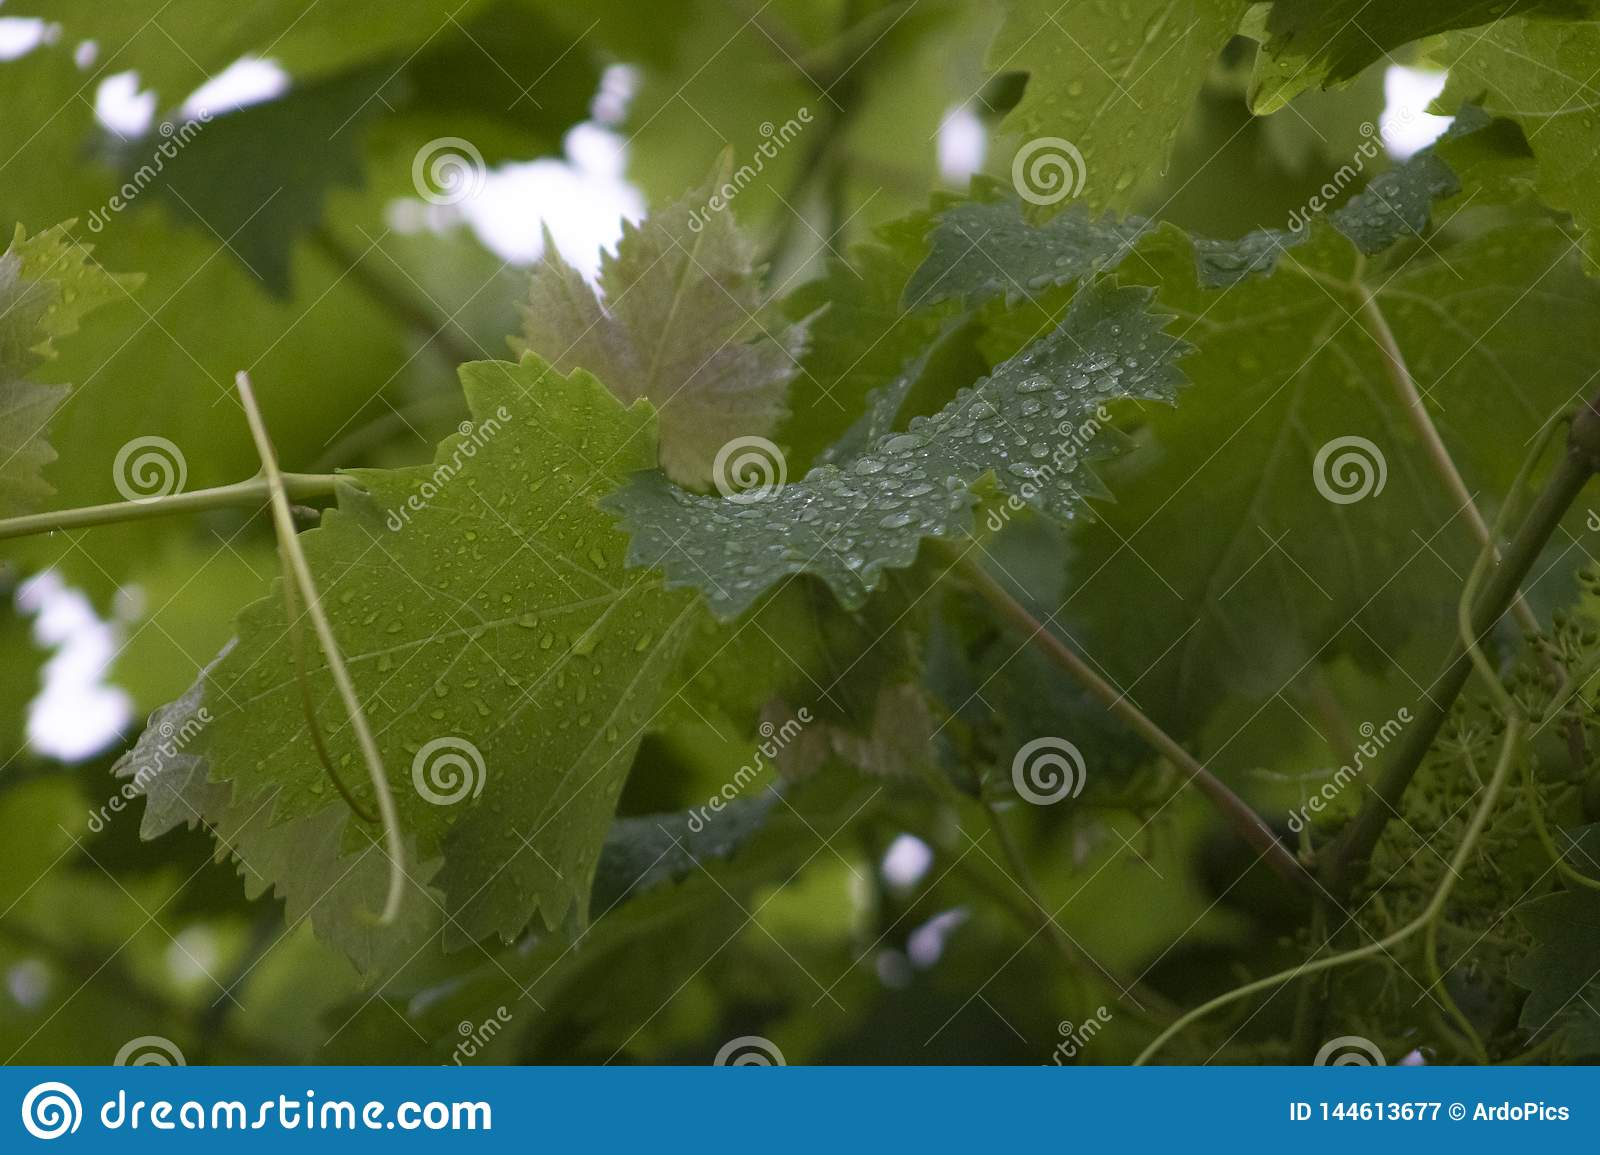 Vine leaves with dew